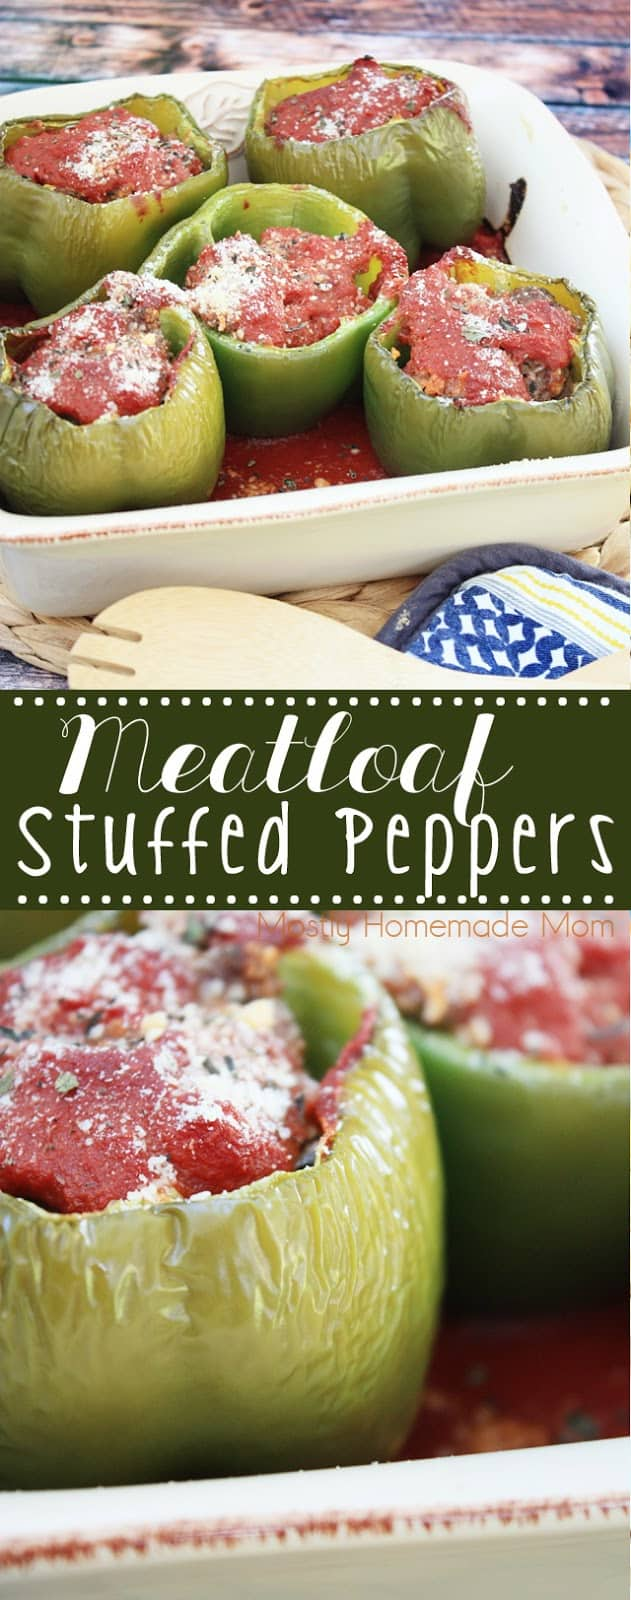 Meatloaf Stuffed Peppers are the perfect favorite dinner recipe mashup! If your family loves stuffed peppers and meatloaf, they'll go crazy for this dinner idea!